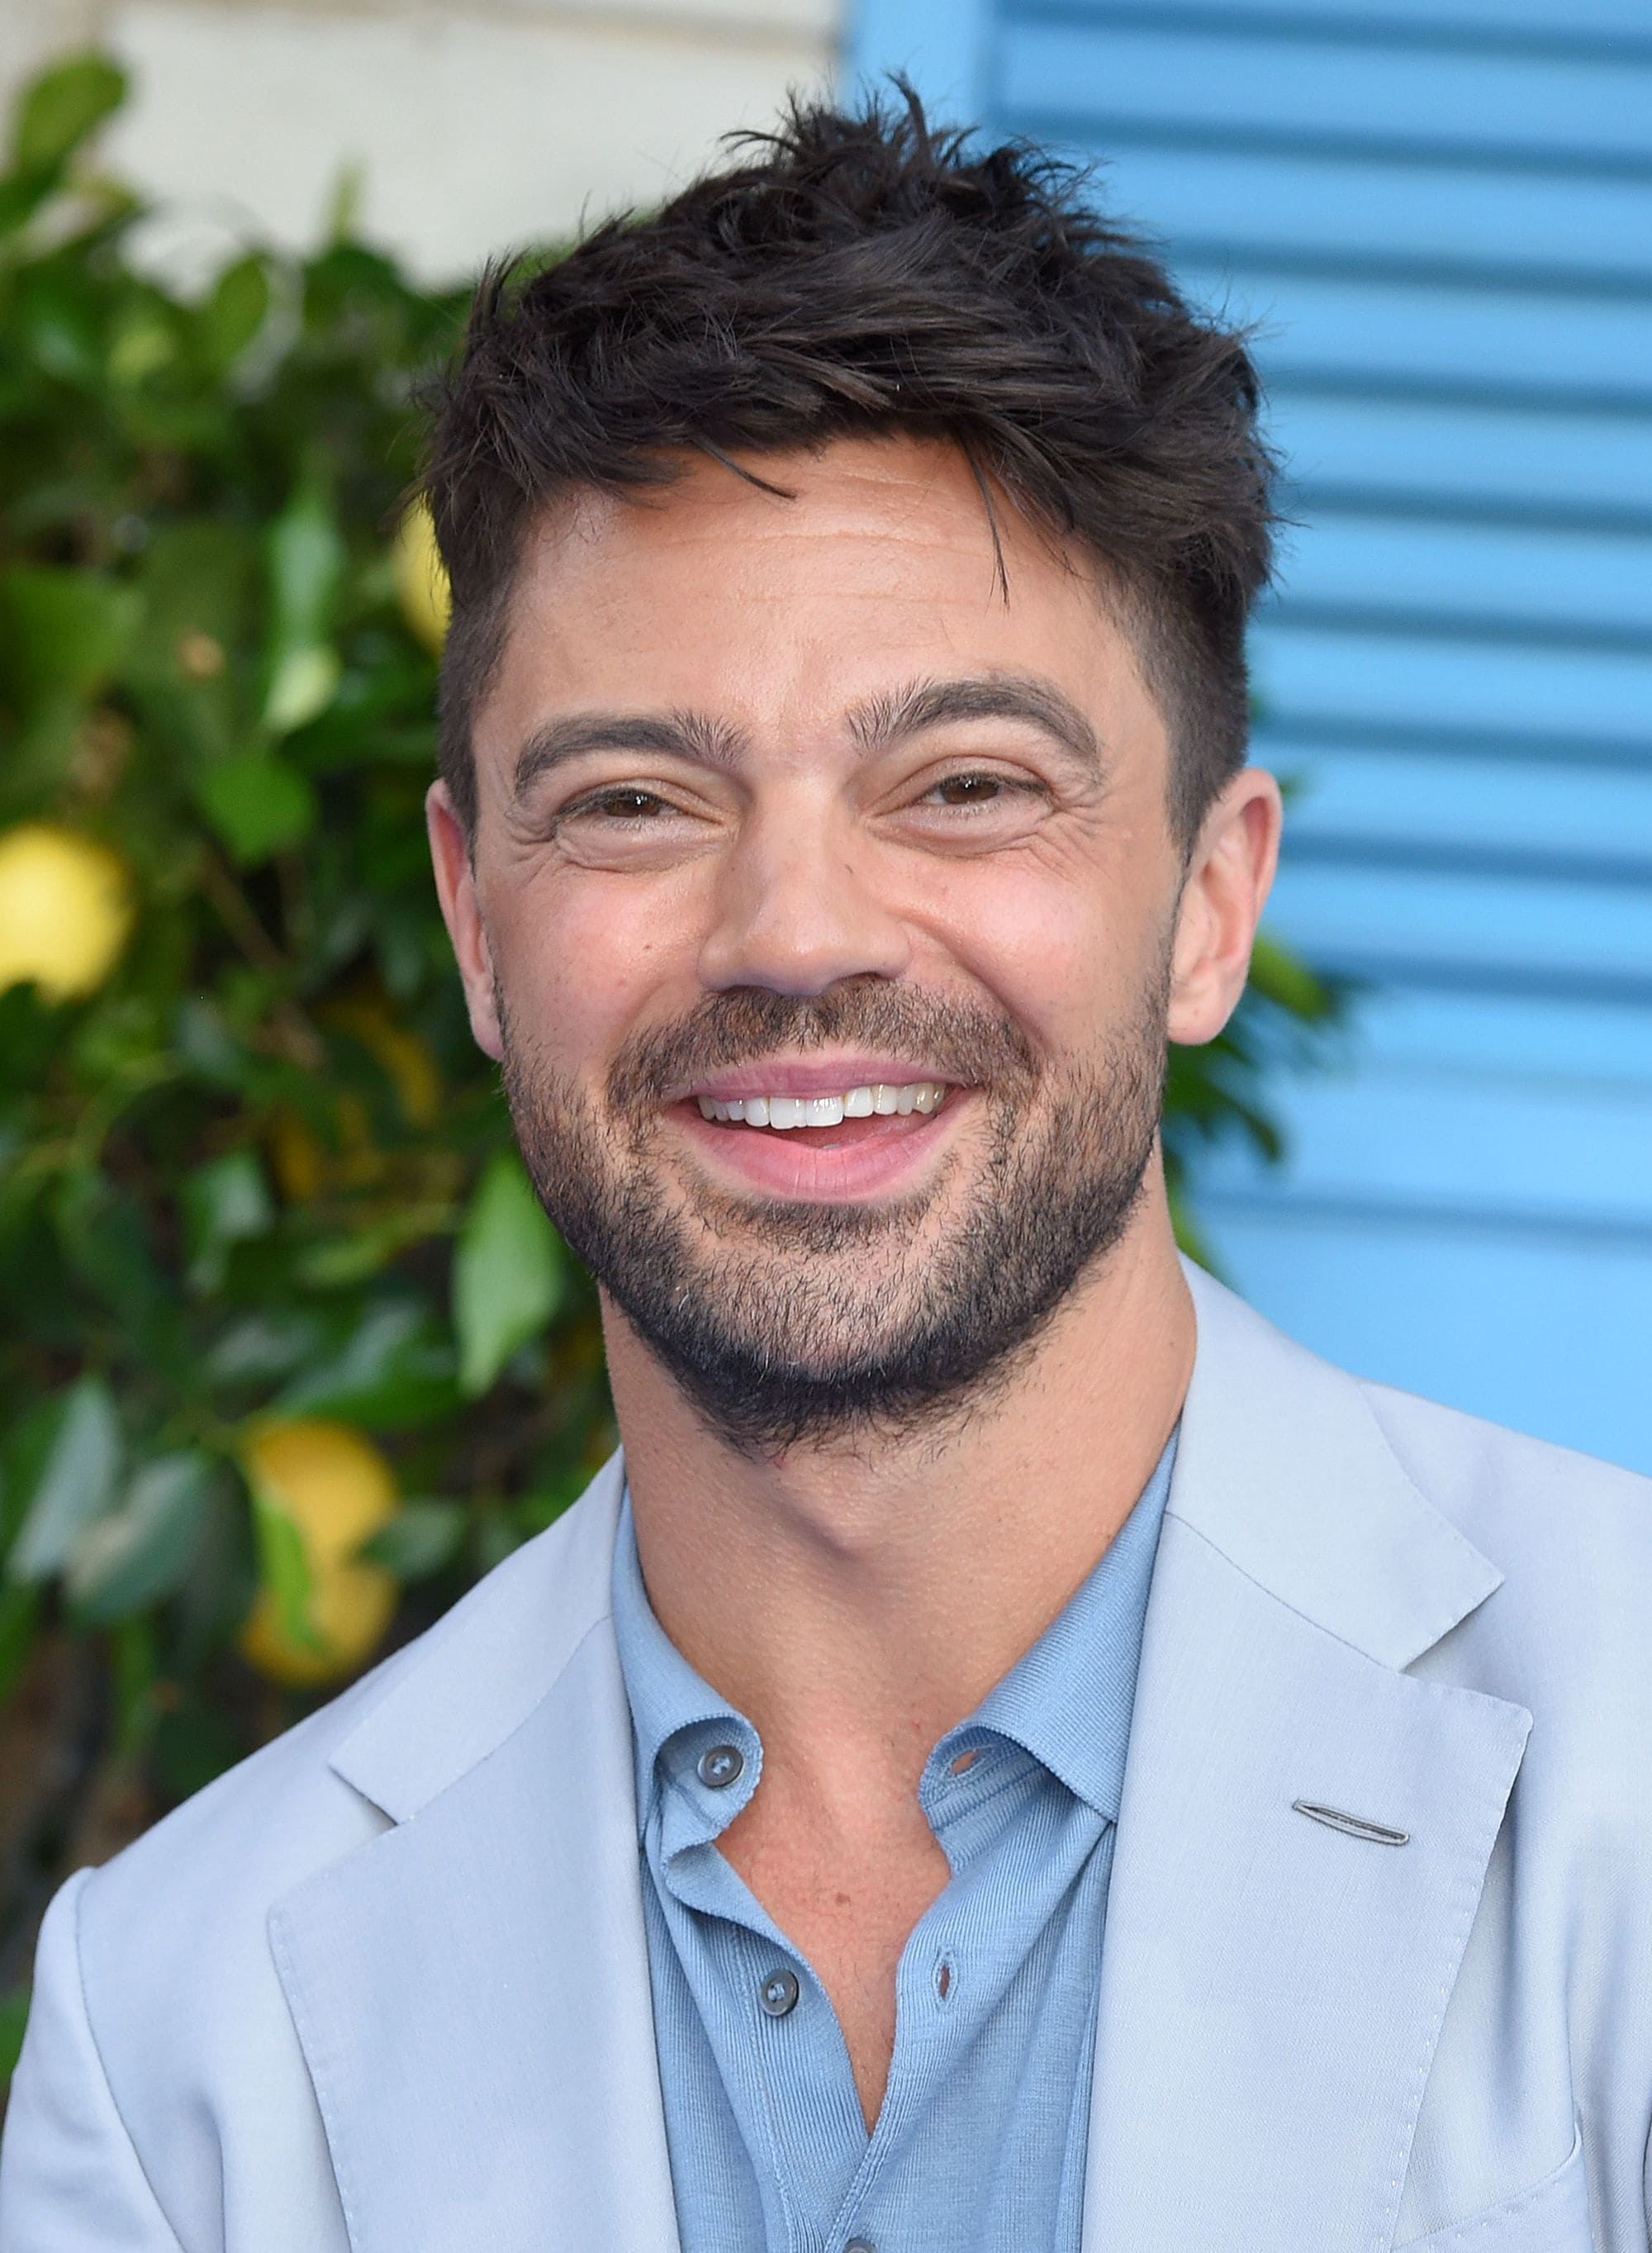 Hairstyles for men over 40: Close-up of Dominic Cooper with brown choppy textured hair, smiling at the camera